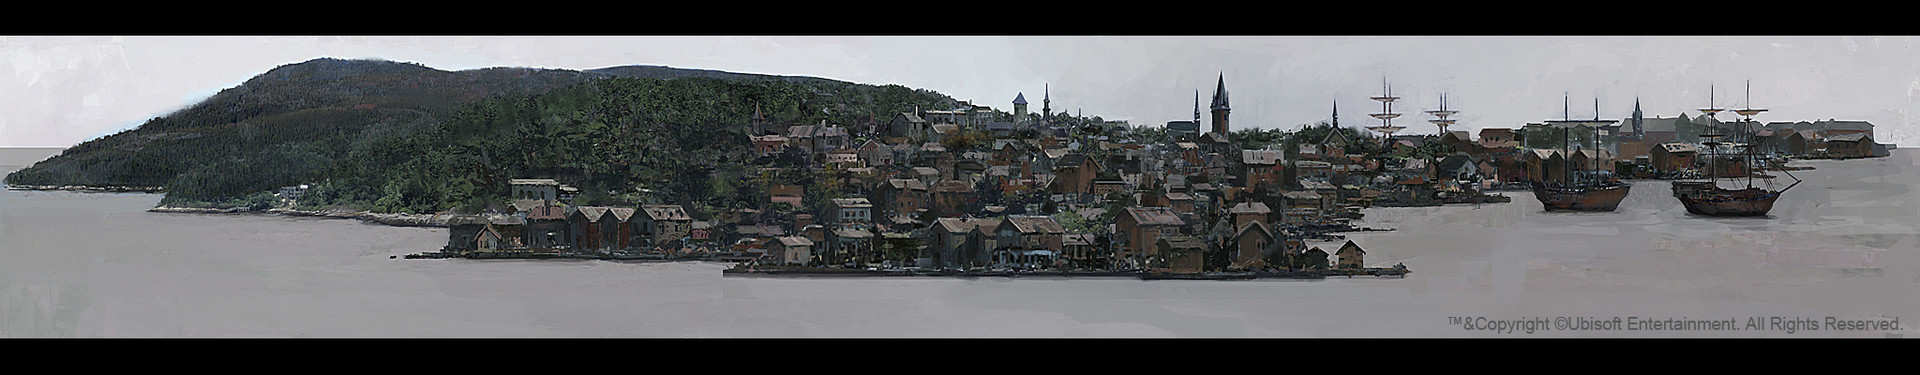 Gilles beloeil ac3 matte painting boston summer